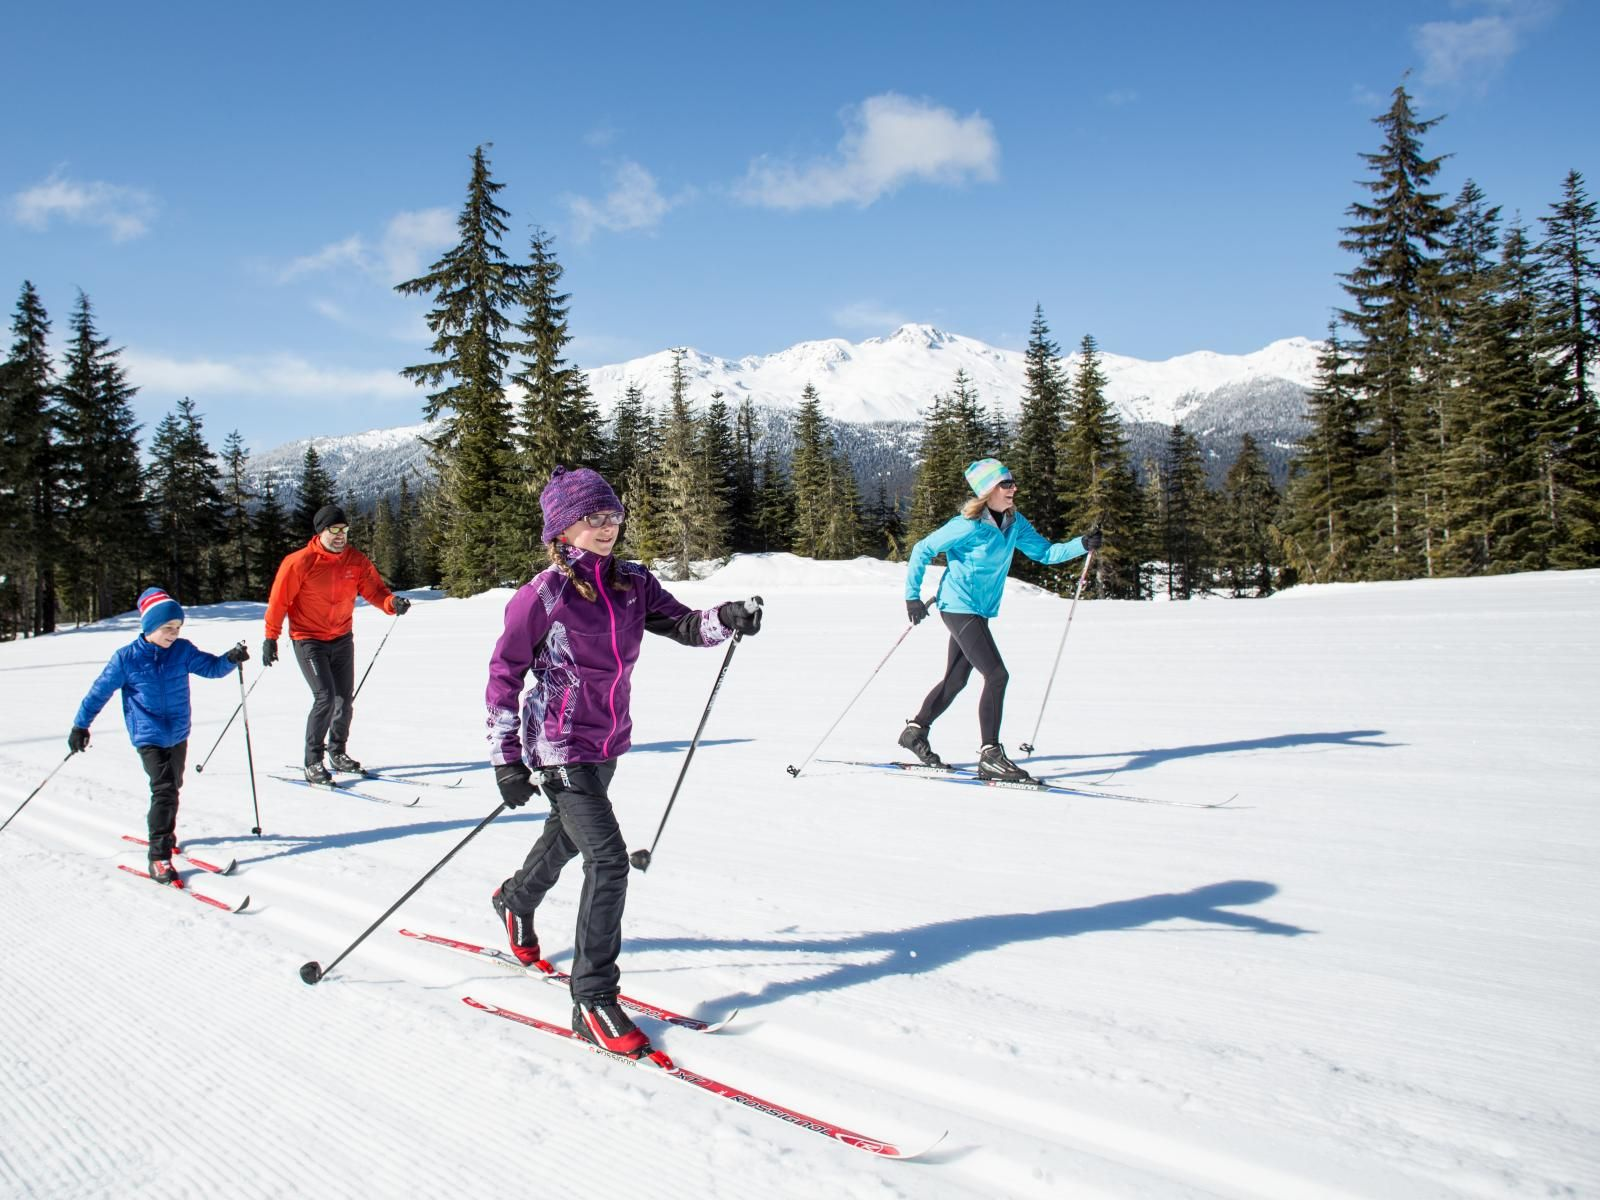 Family Cross Country Skiing At Whistler Olympic Park Cross Country Skiing Cross Country Skier Cross Country